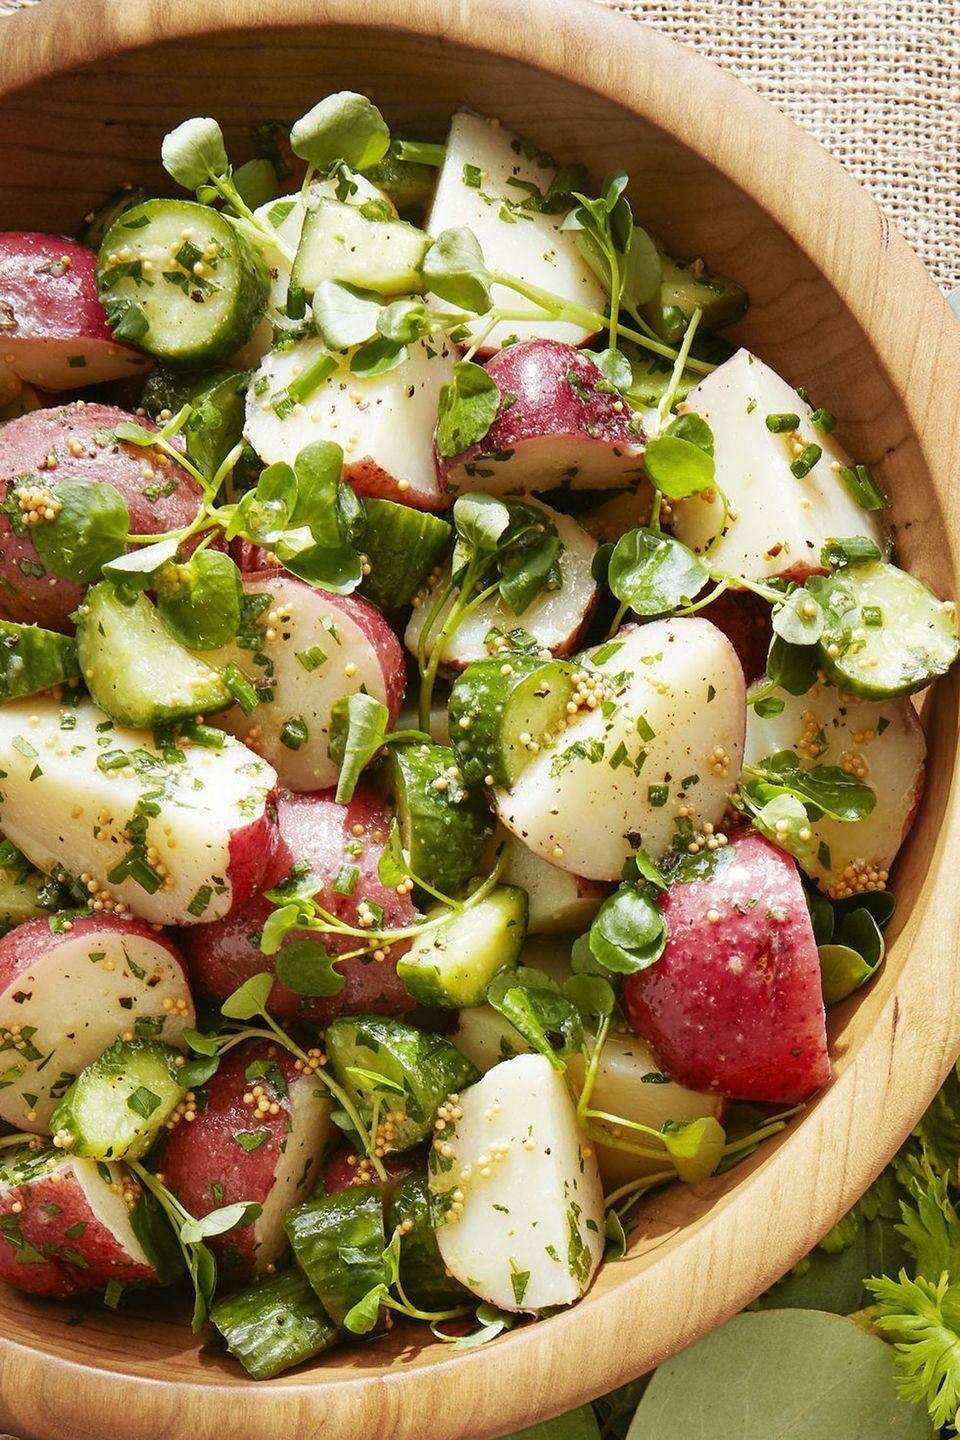 "<p>Swap out heavy mayo for red wine vinegar and Dijon mustard in this lighter potato salad.</p><p><strong><a href=""https://www.countryliving.com/food-drinks/a19041163/tangy-potato-salad-recipe/"" rel=""nofollow noopener"" target=""_blank"" data-ylk=""slk:Get the recipe"" class=""link rapid-noclick-resp"">Get the recipe</a>.</strong></p>"